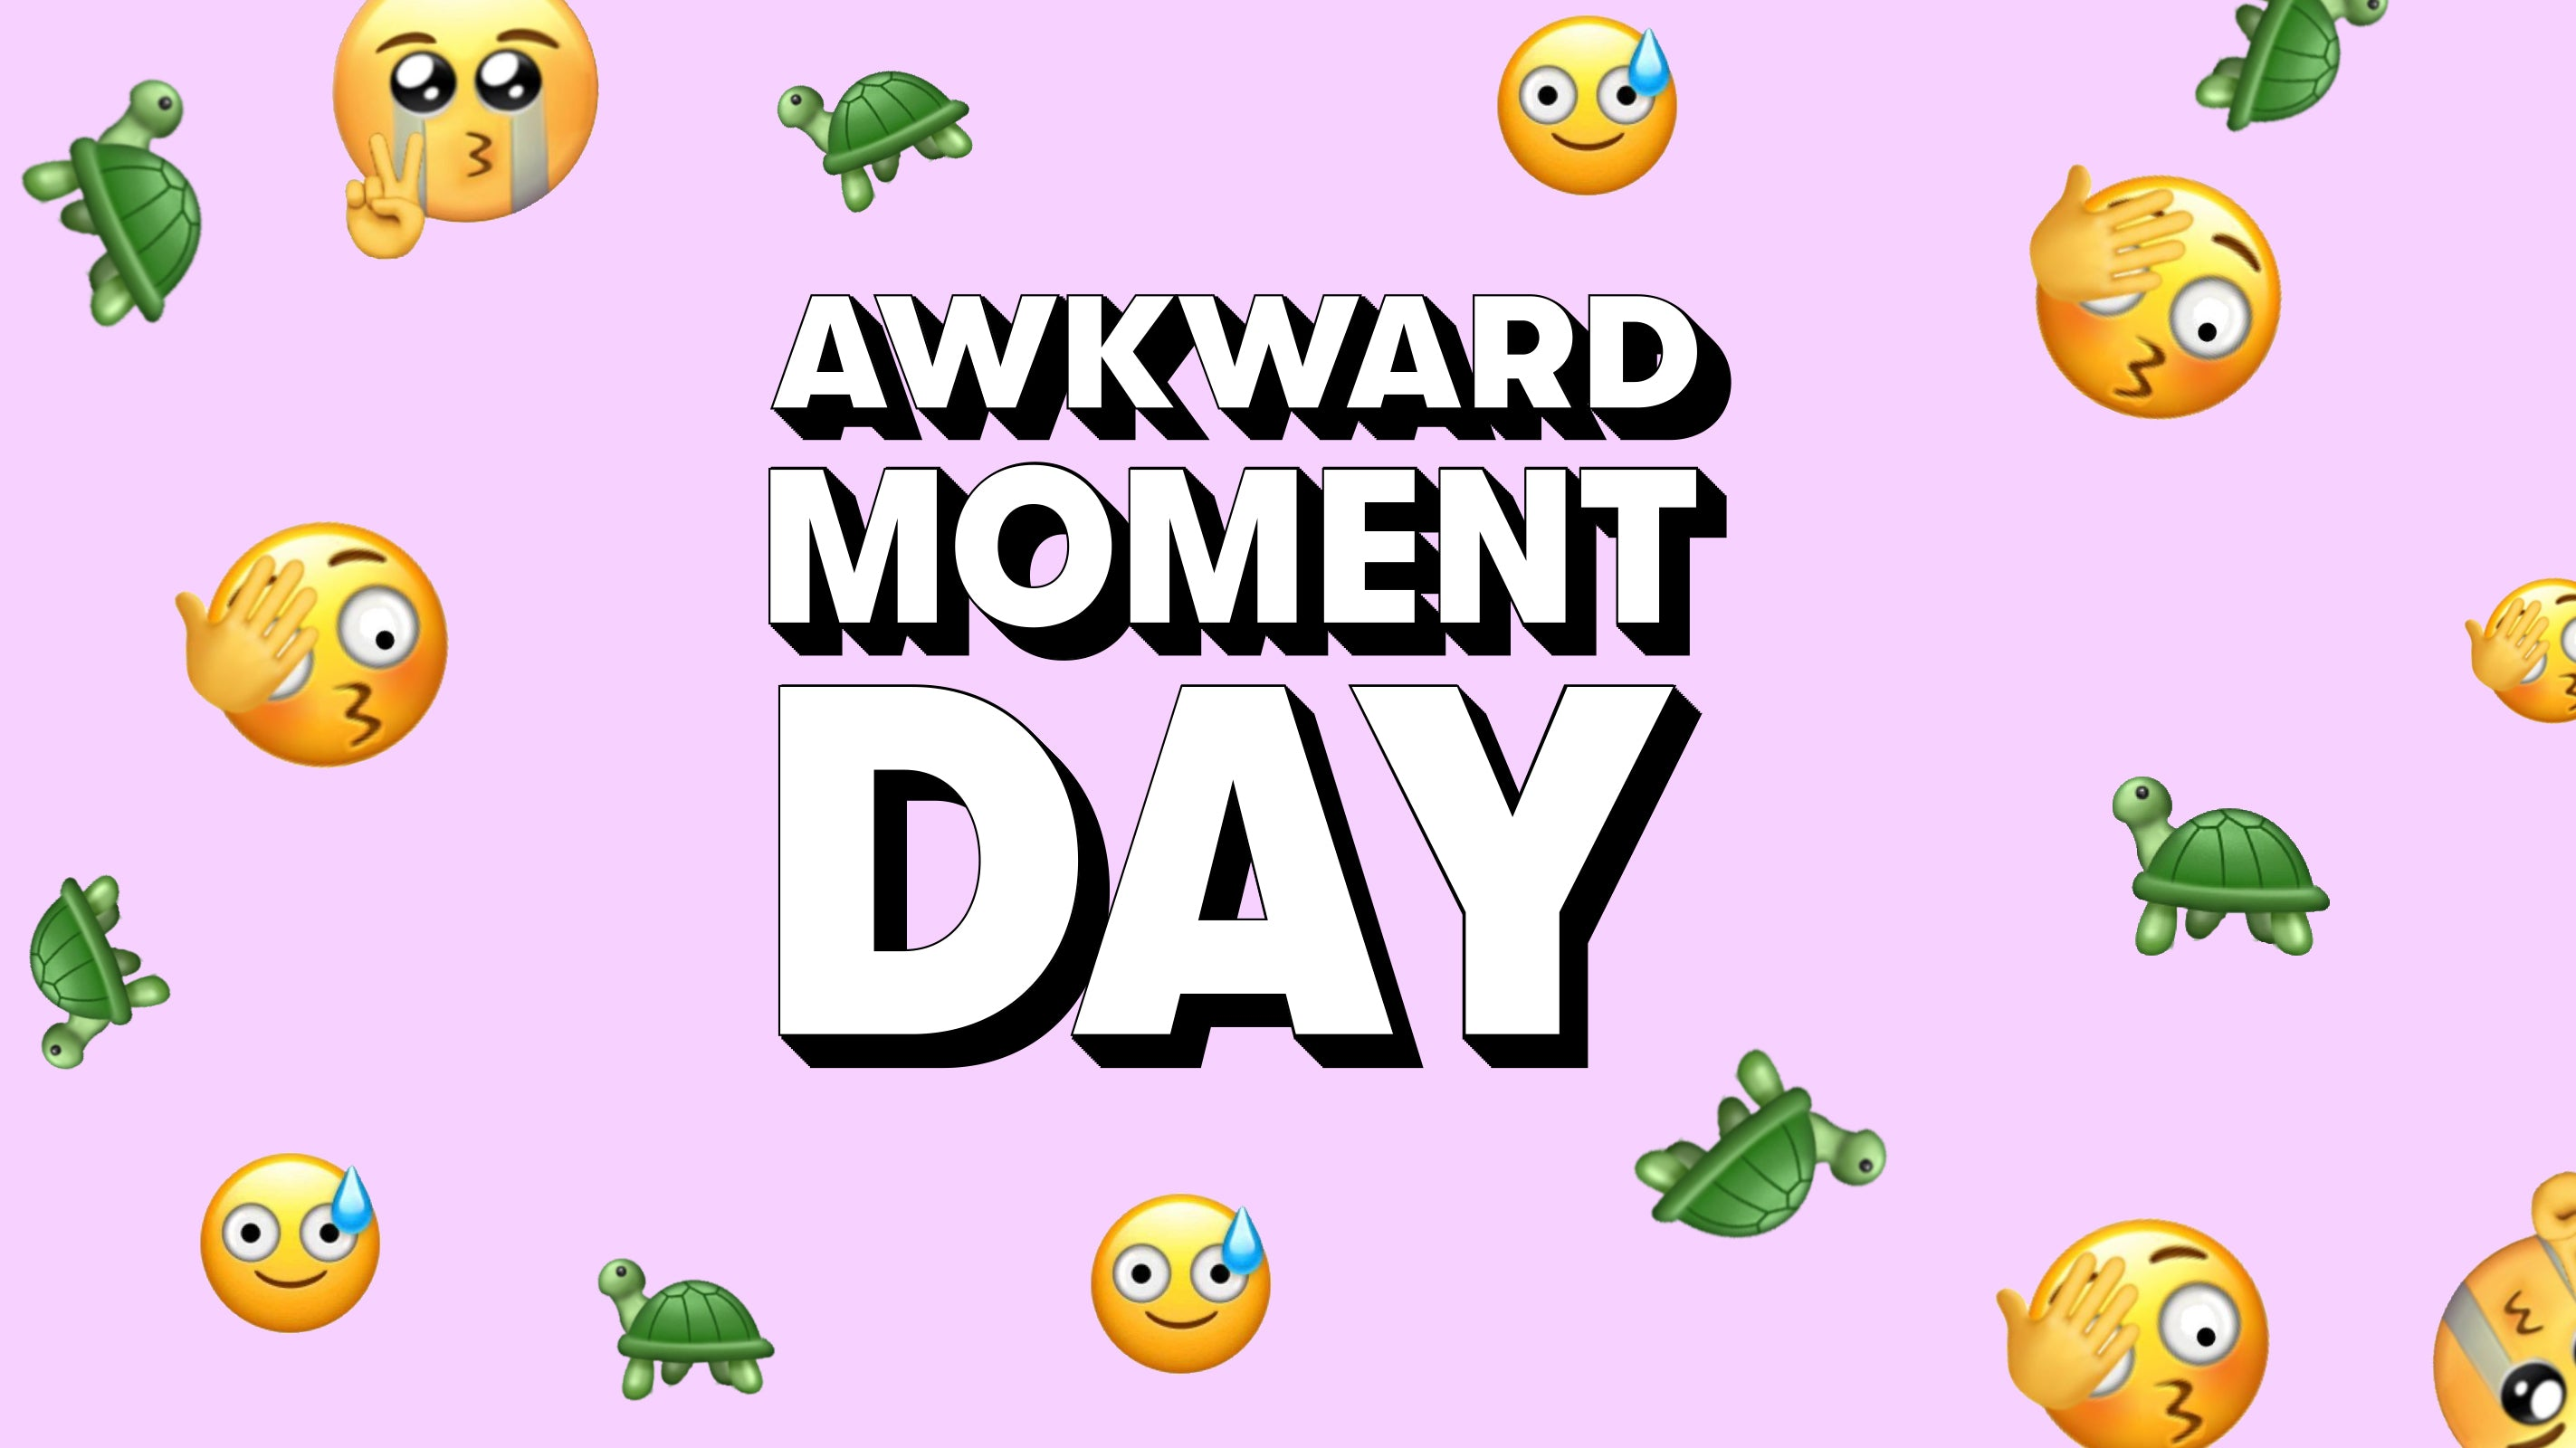 🐢 It's Awkward Moment Day 🐢